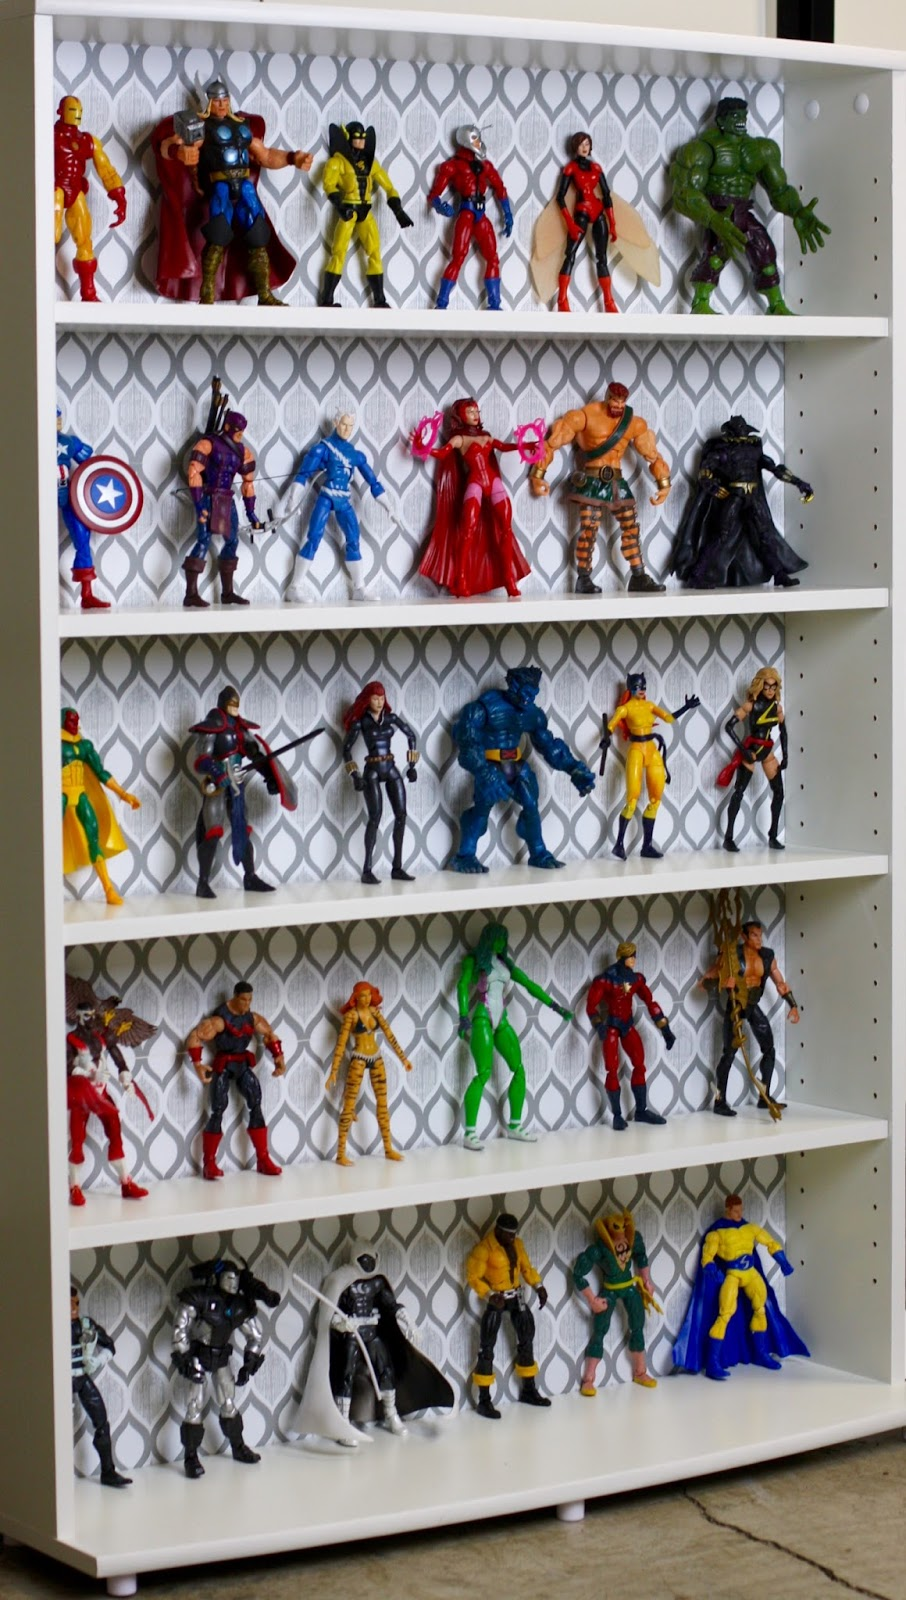 Geek diy bam marvel legends avengers action figure display multimedia storage tower from last weeks blog entry a whole bunch of marvel legends avengers action figures diy solutioingenieria Images